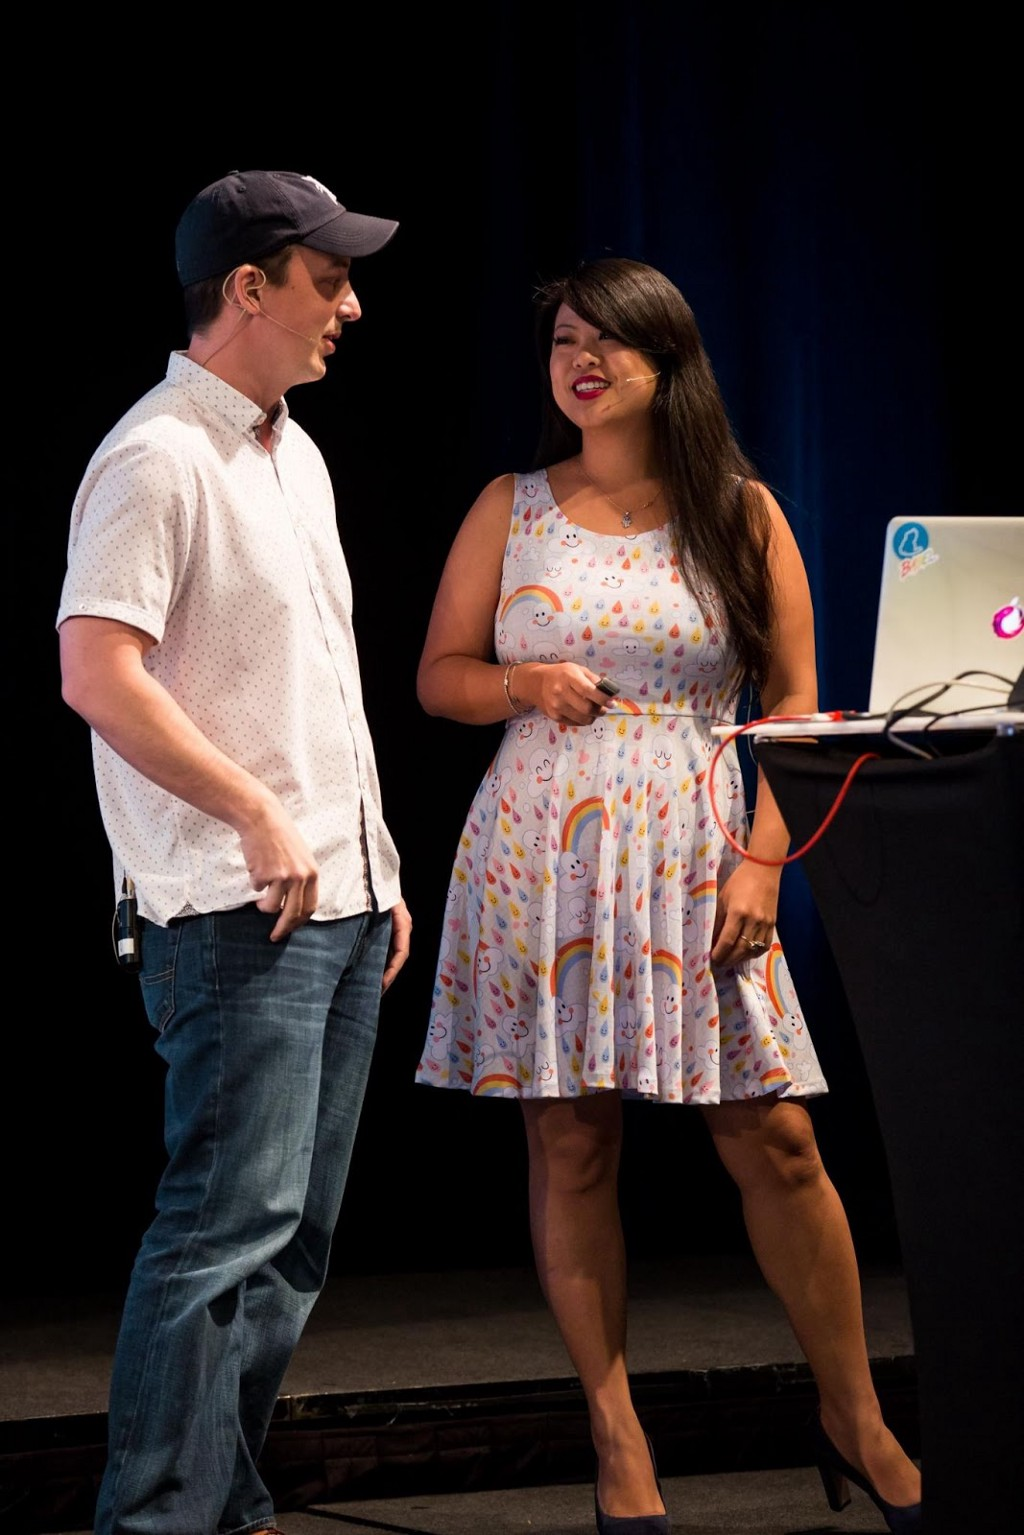 Tracy Lee and Ben Lesh talking on a stage